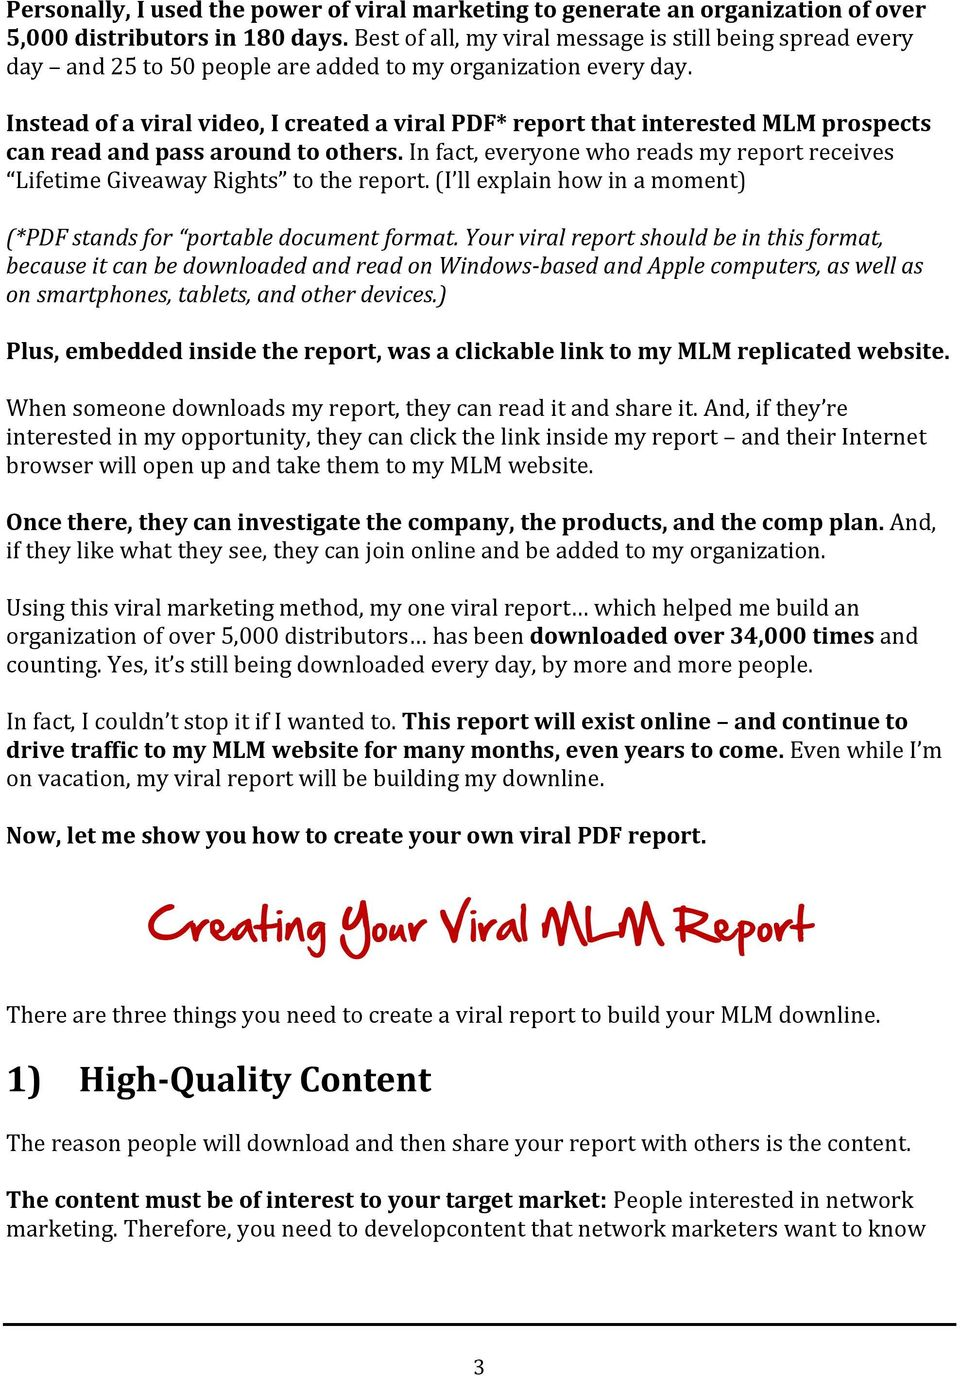 Instead of a viral video, I created a viral PDF* report that interested MLM prospects can read and pass around to others.